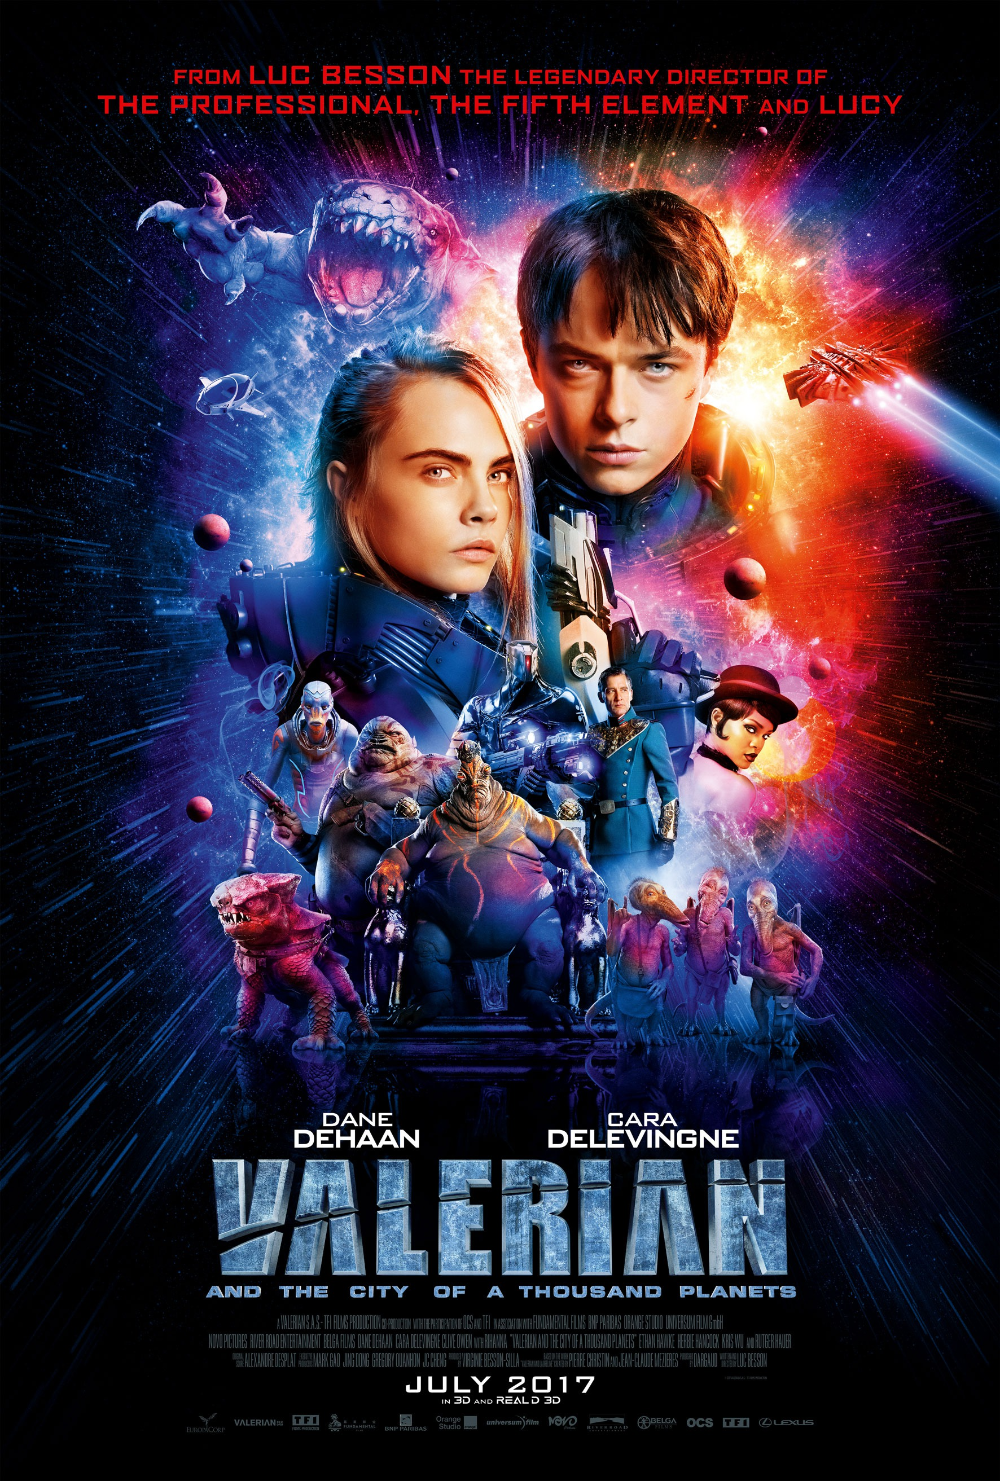 Valerian And The City Of A Thousand Planets In 2020 Planet Movie Netflix Movies New Movies To Watch